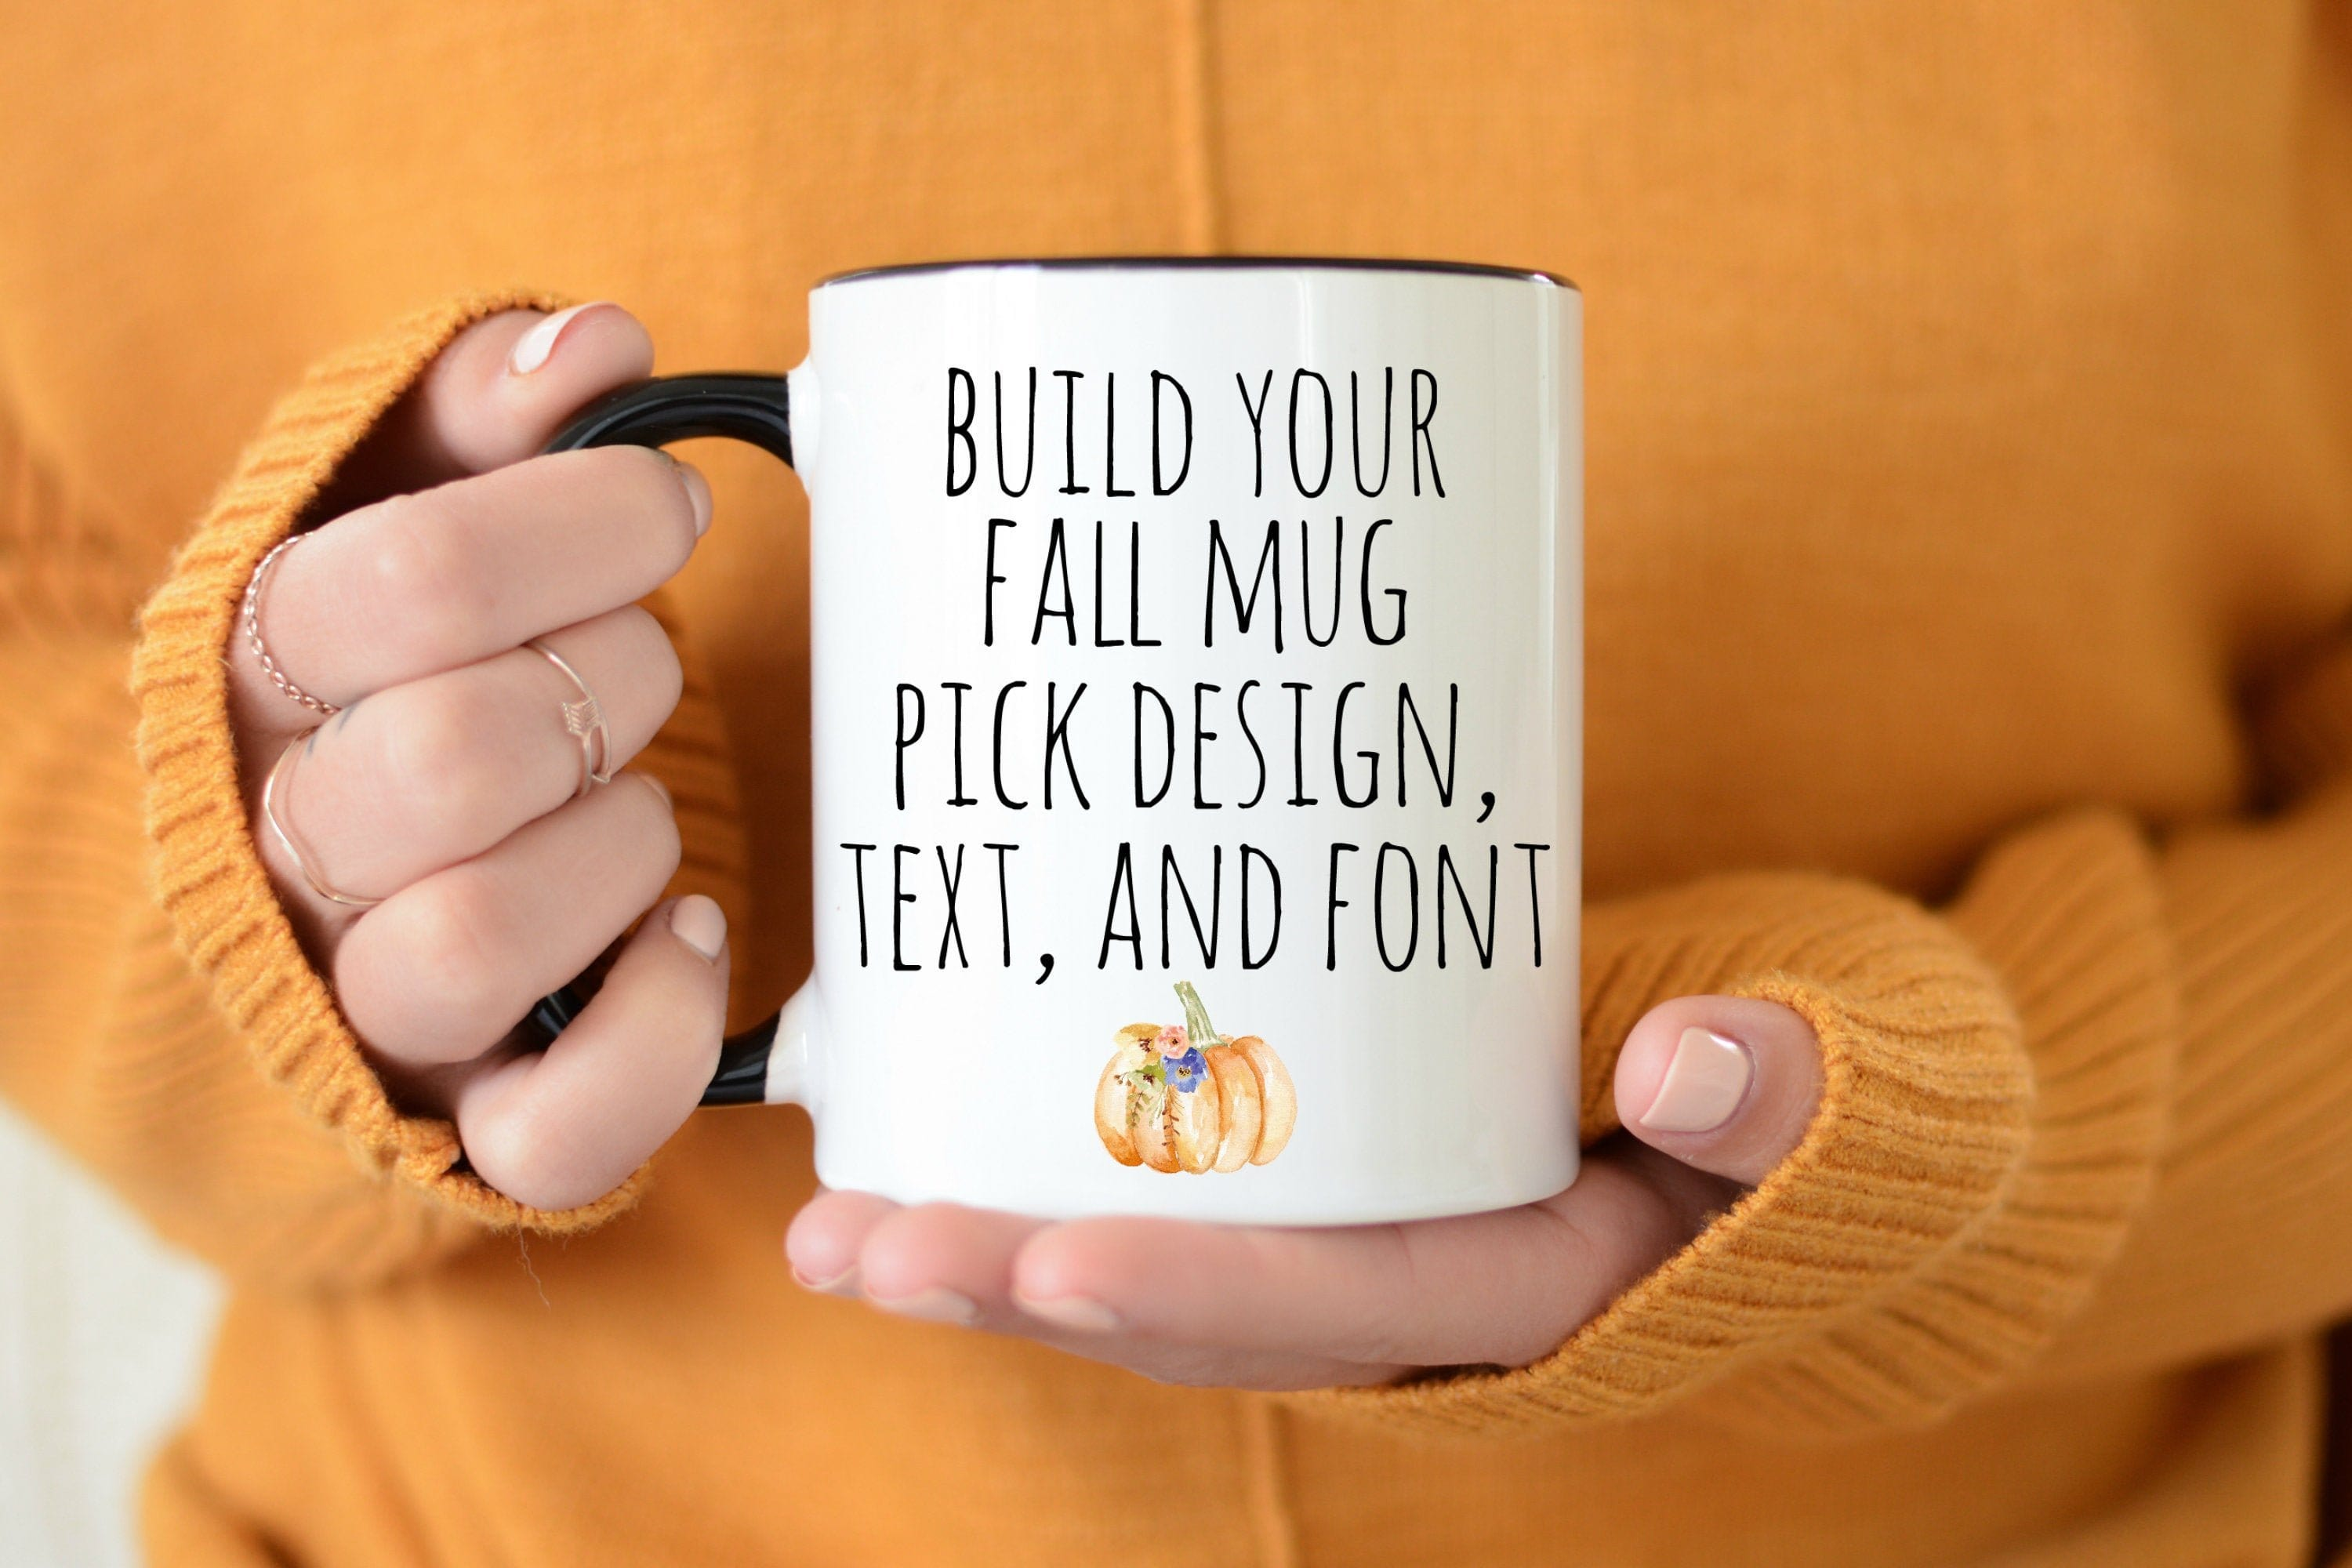 Fall mug personalized